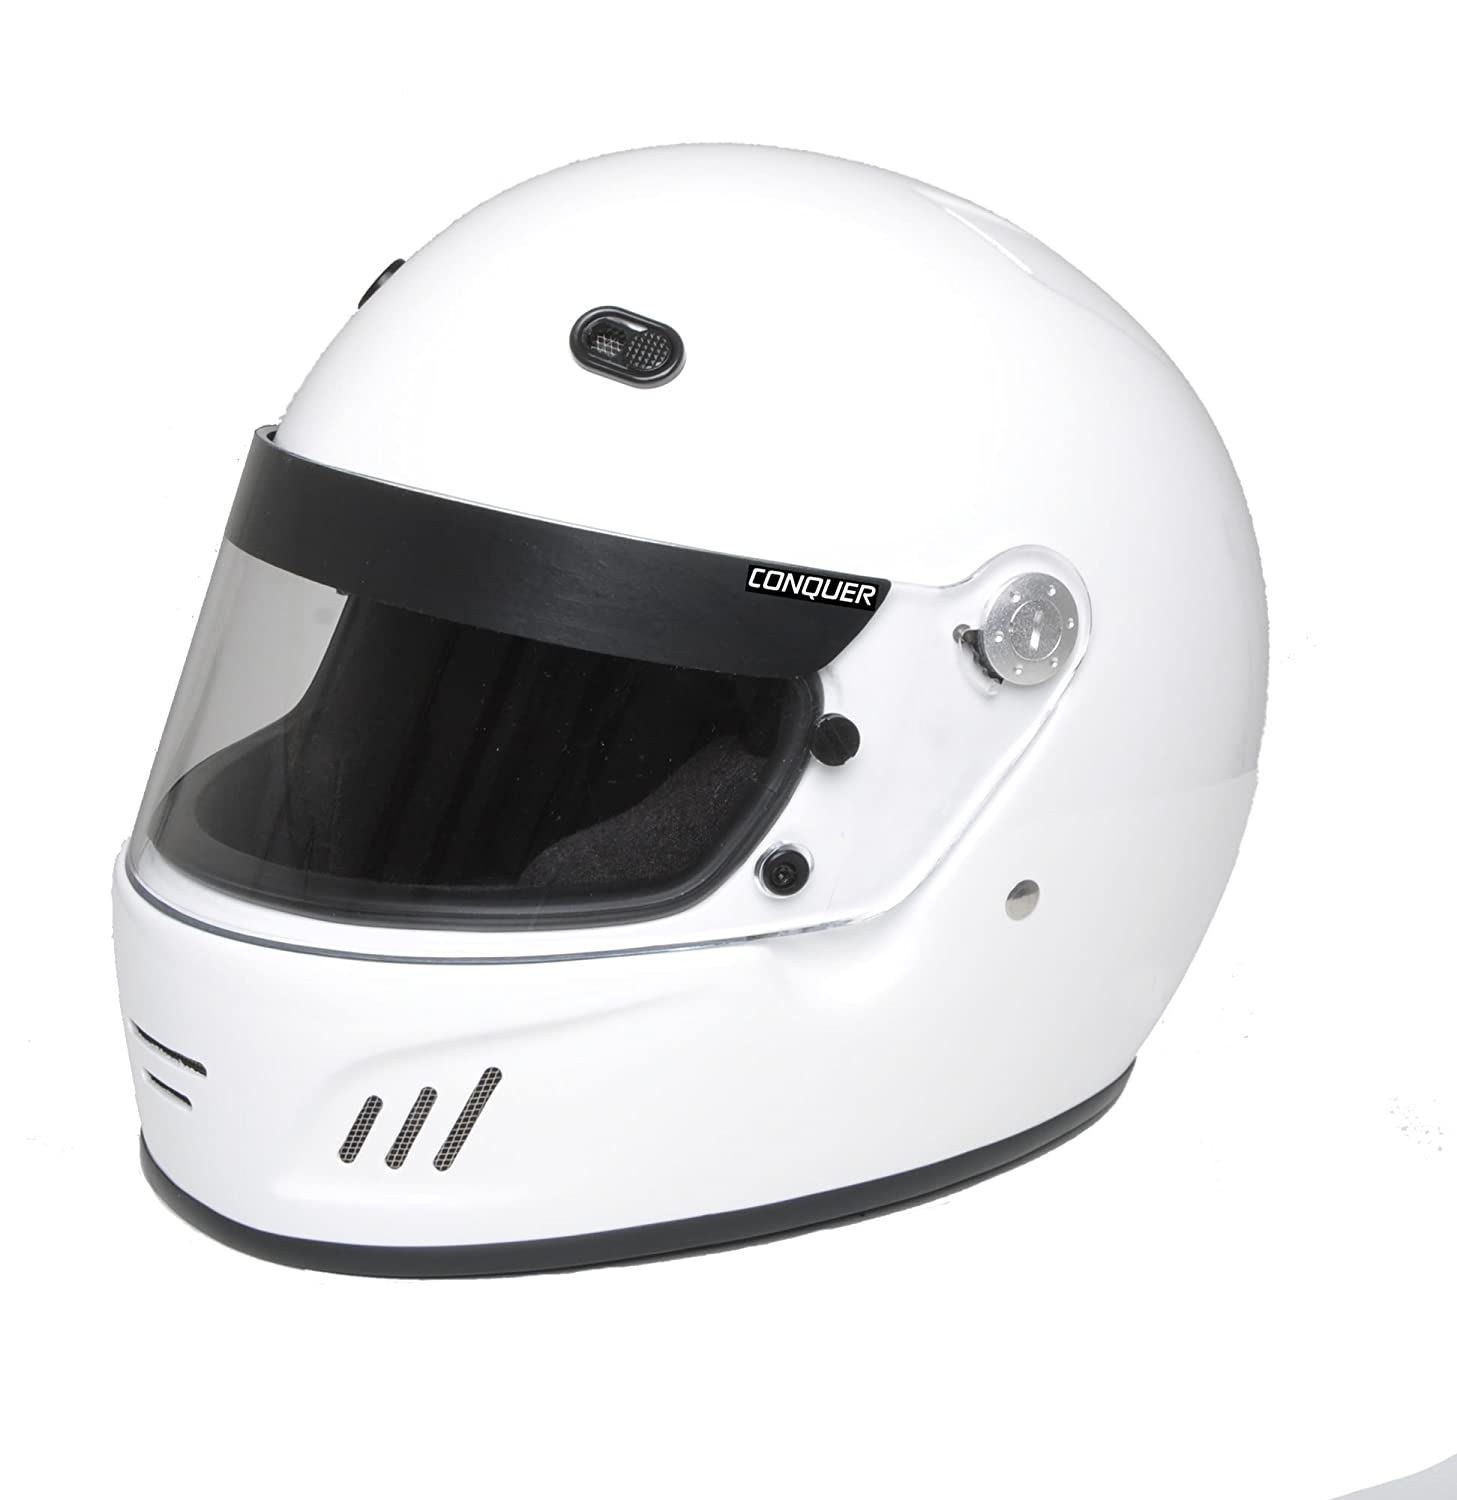 CONQUER SNELL APPROVED FULL-FACE AUTO RACING HELMET